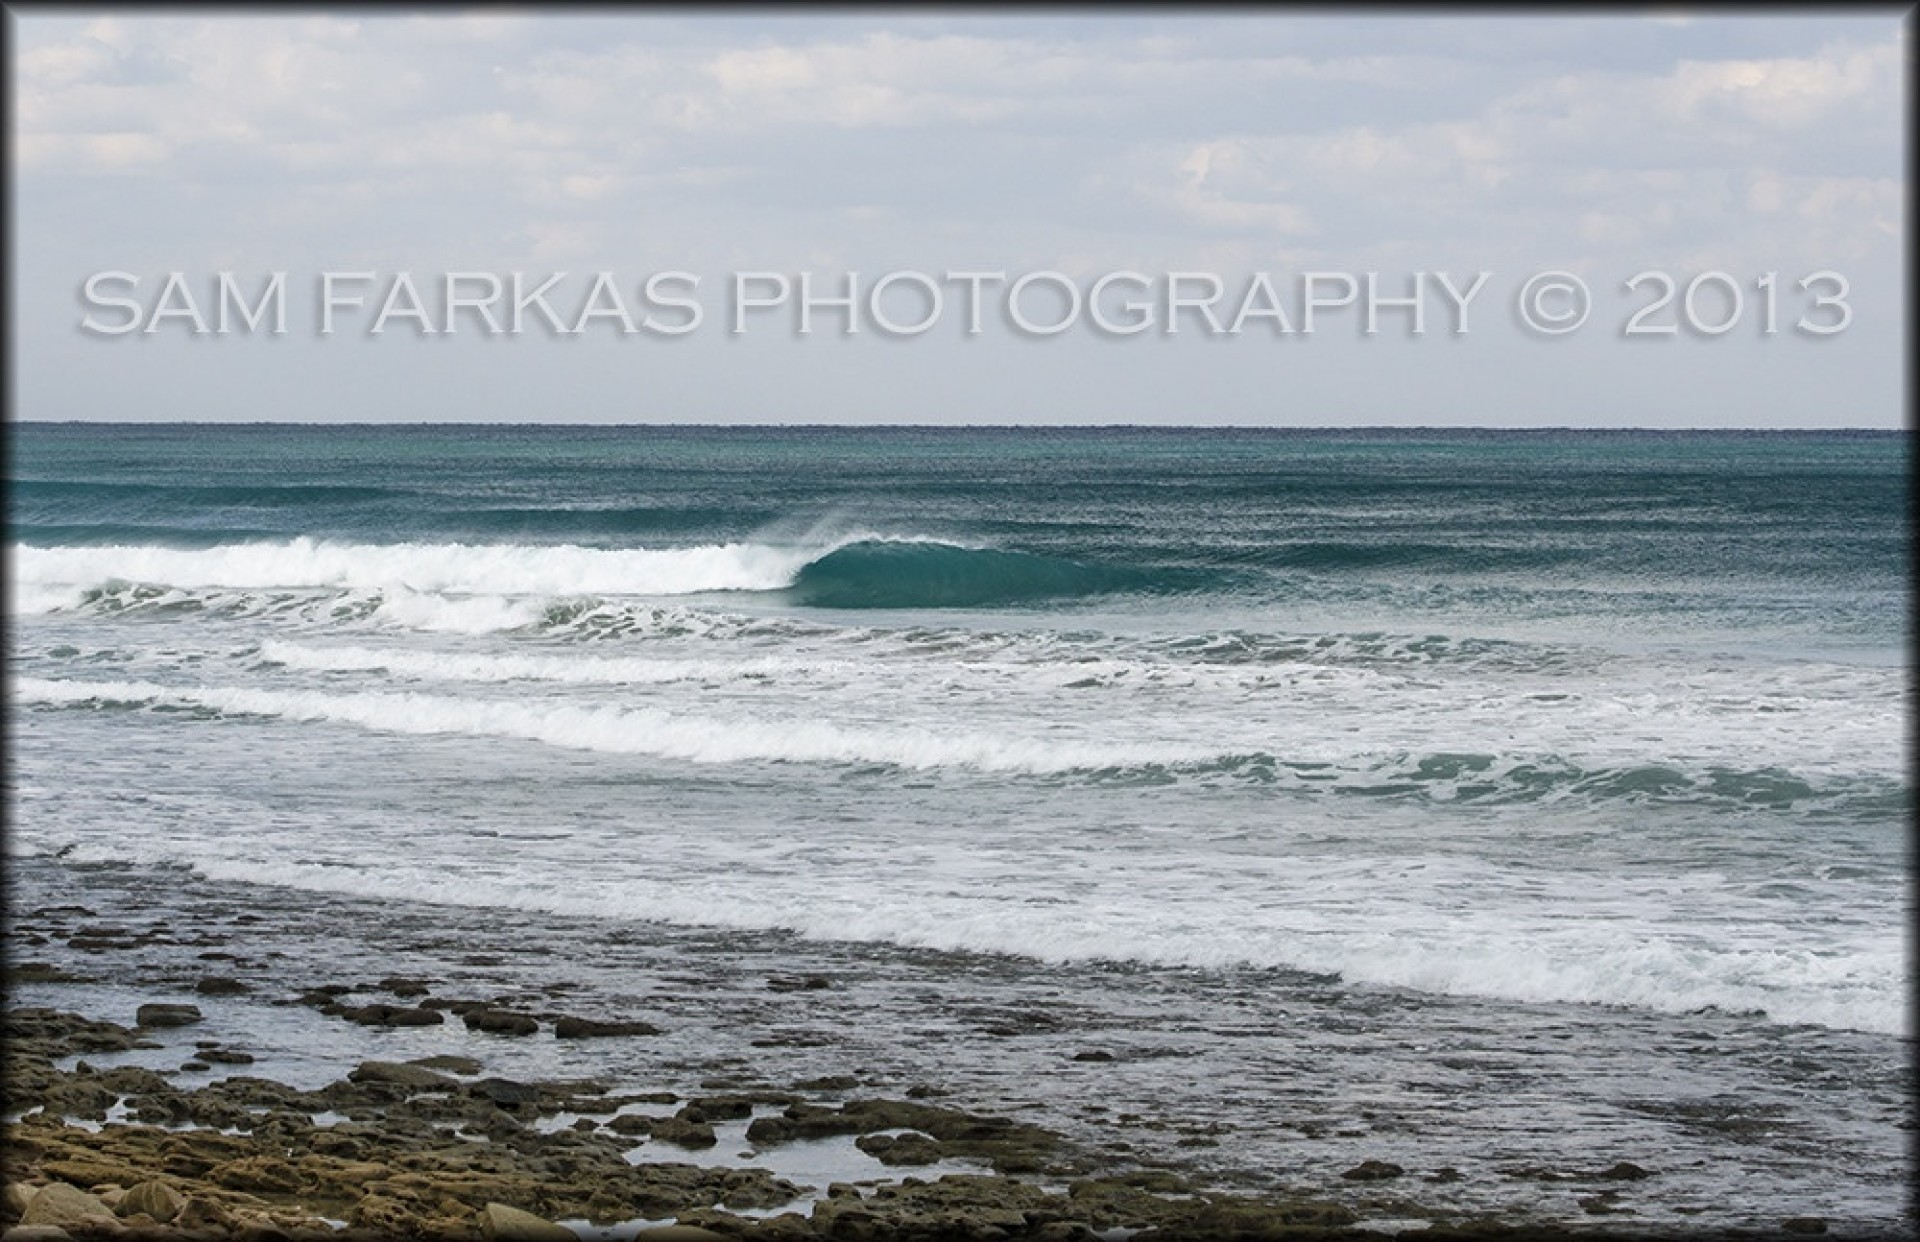 SamFarkasPhotography's photo of Jupiter Inlet